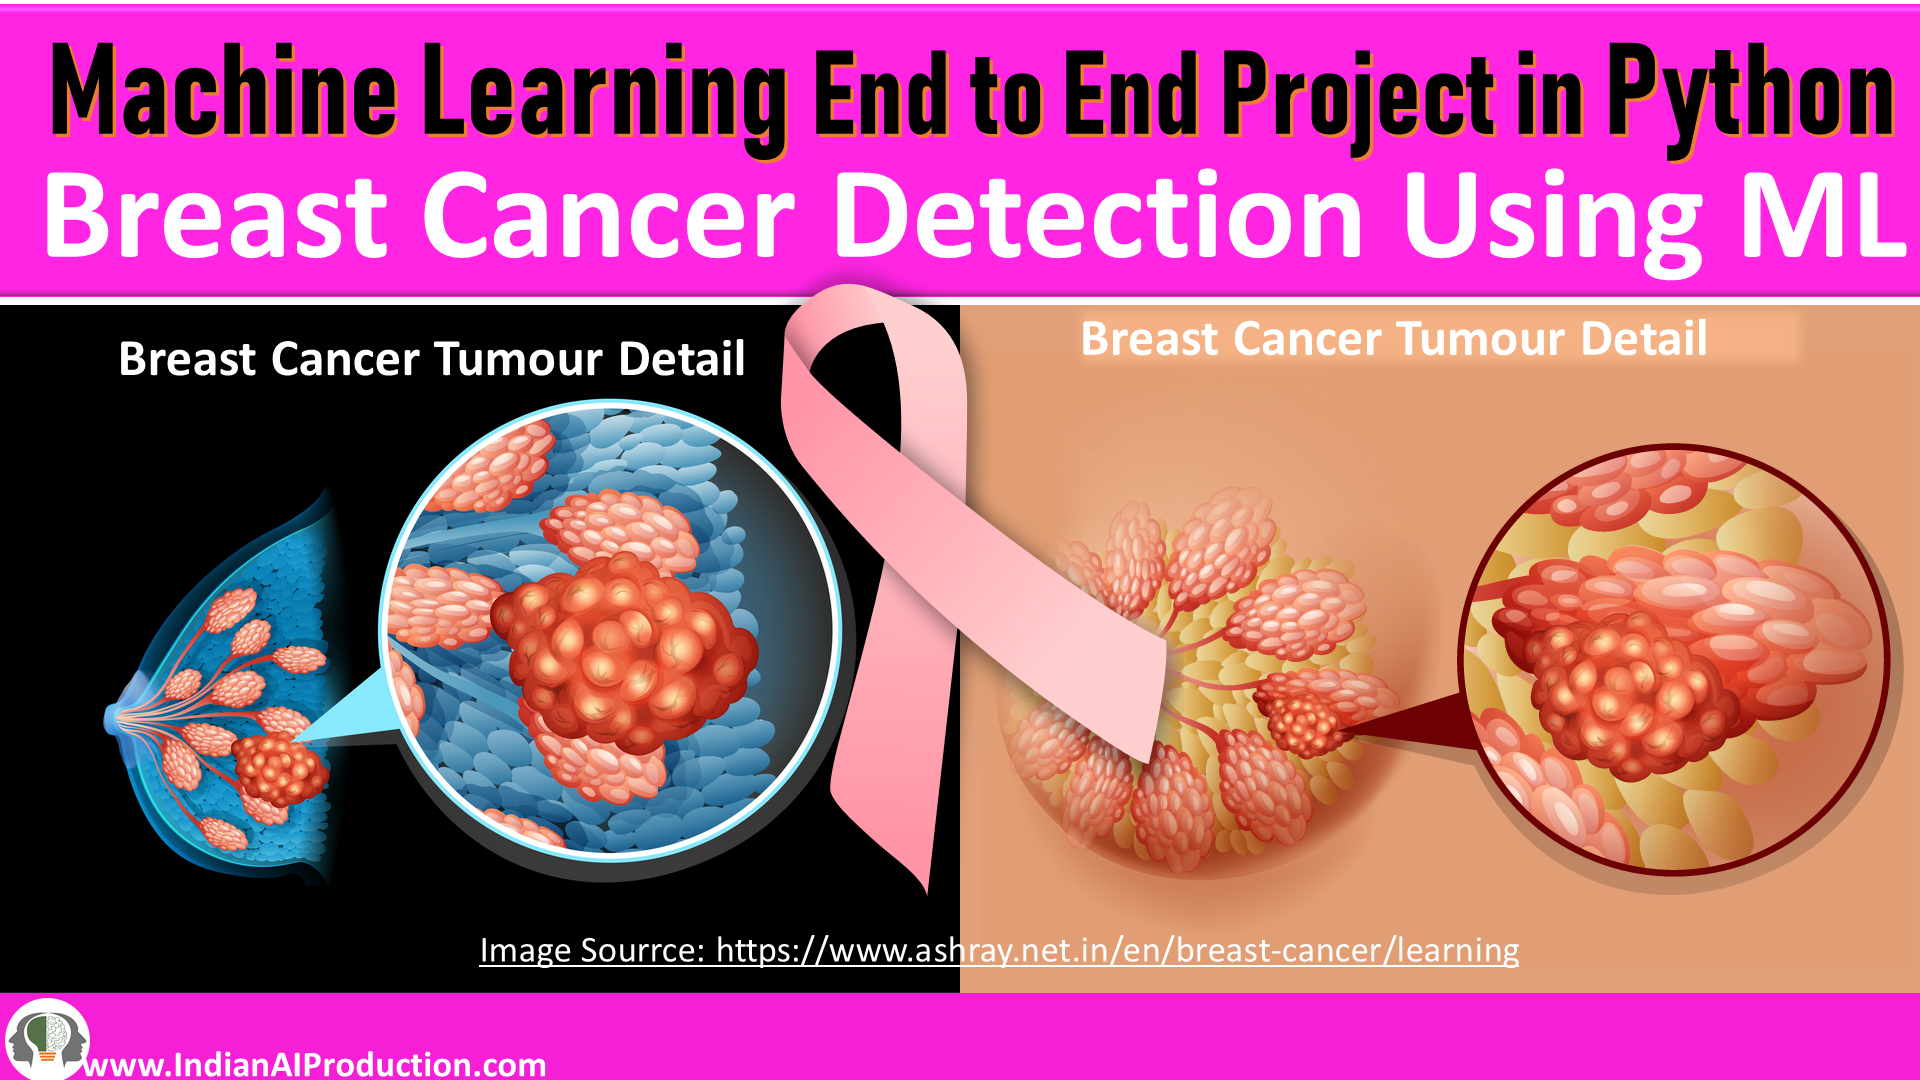 Breast-Cancer-Detection-Machine-Learning-Project